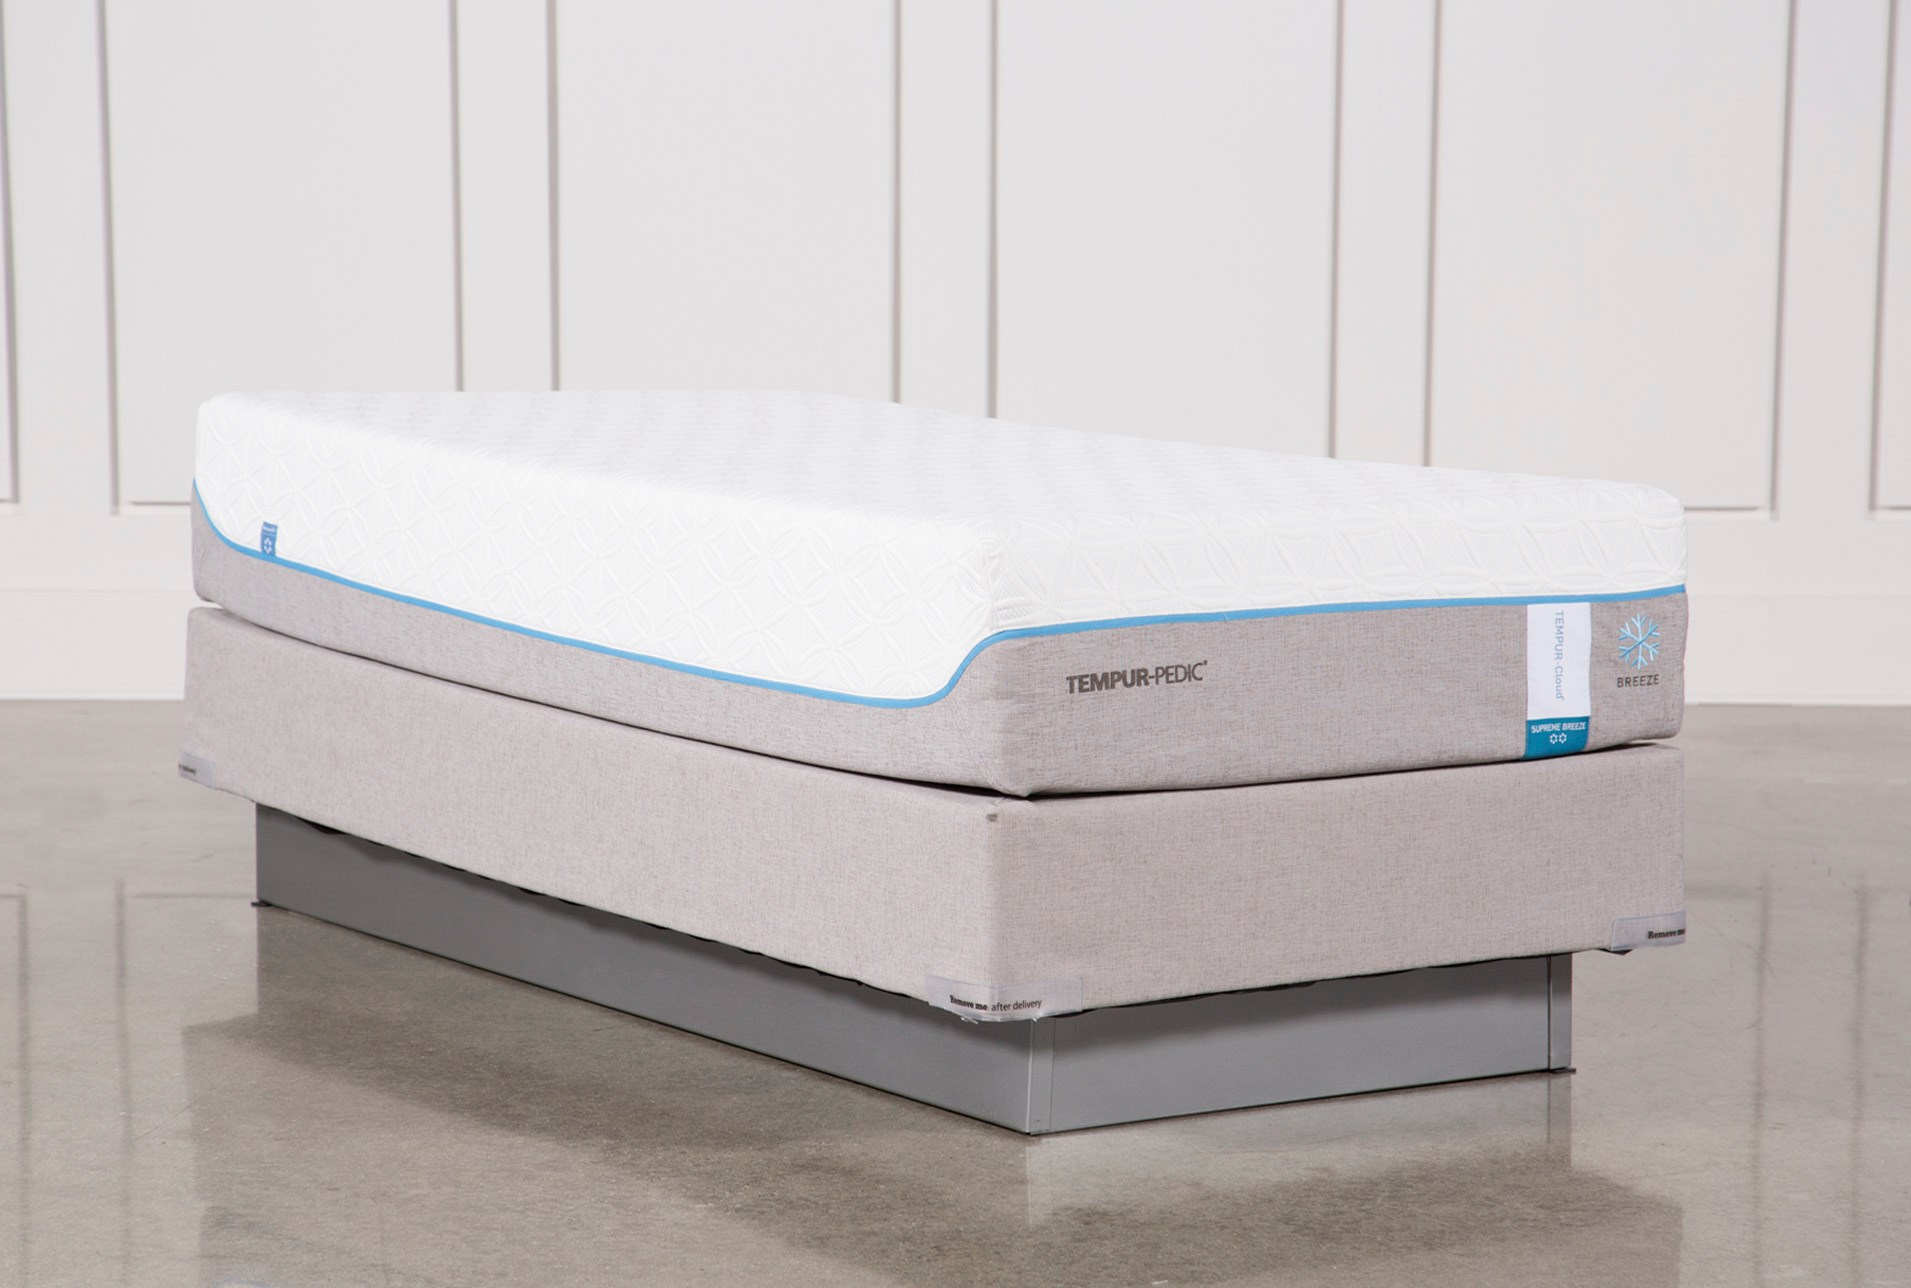 Tempur Pedic Cloud Supreme Breeze 2 0 Twin Xl Mattress W Foundation Qty 1 Has Been Successfully Added To Your Cart